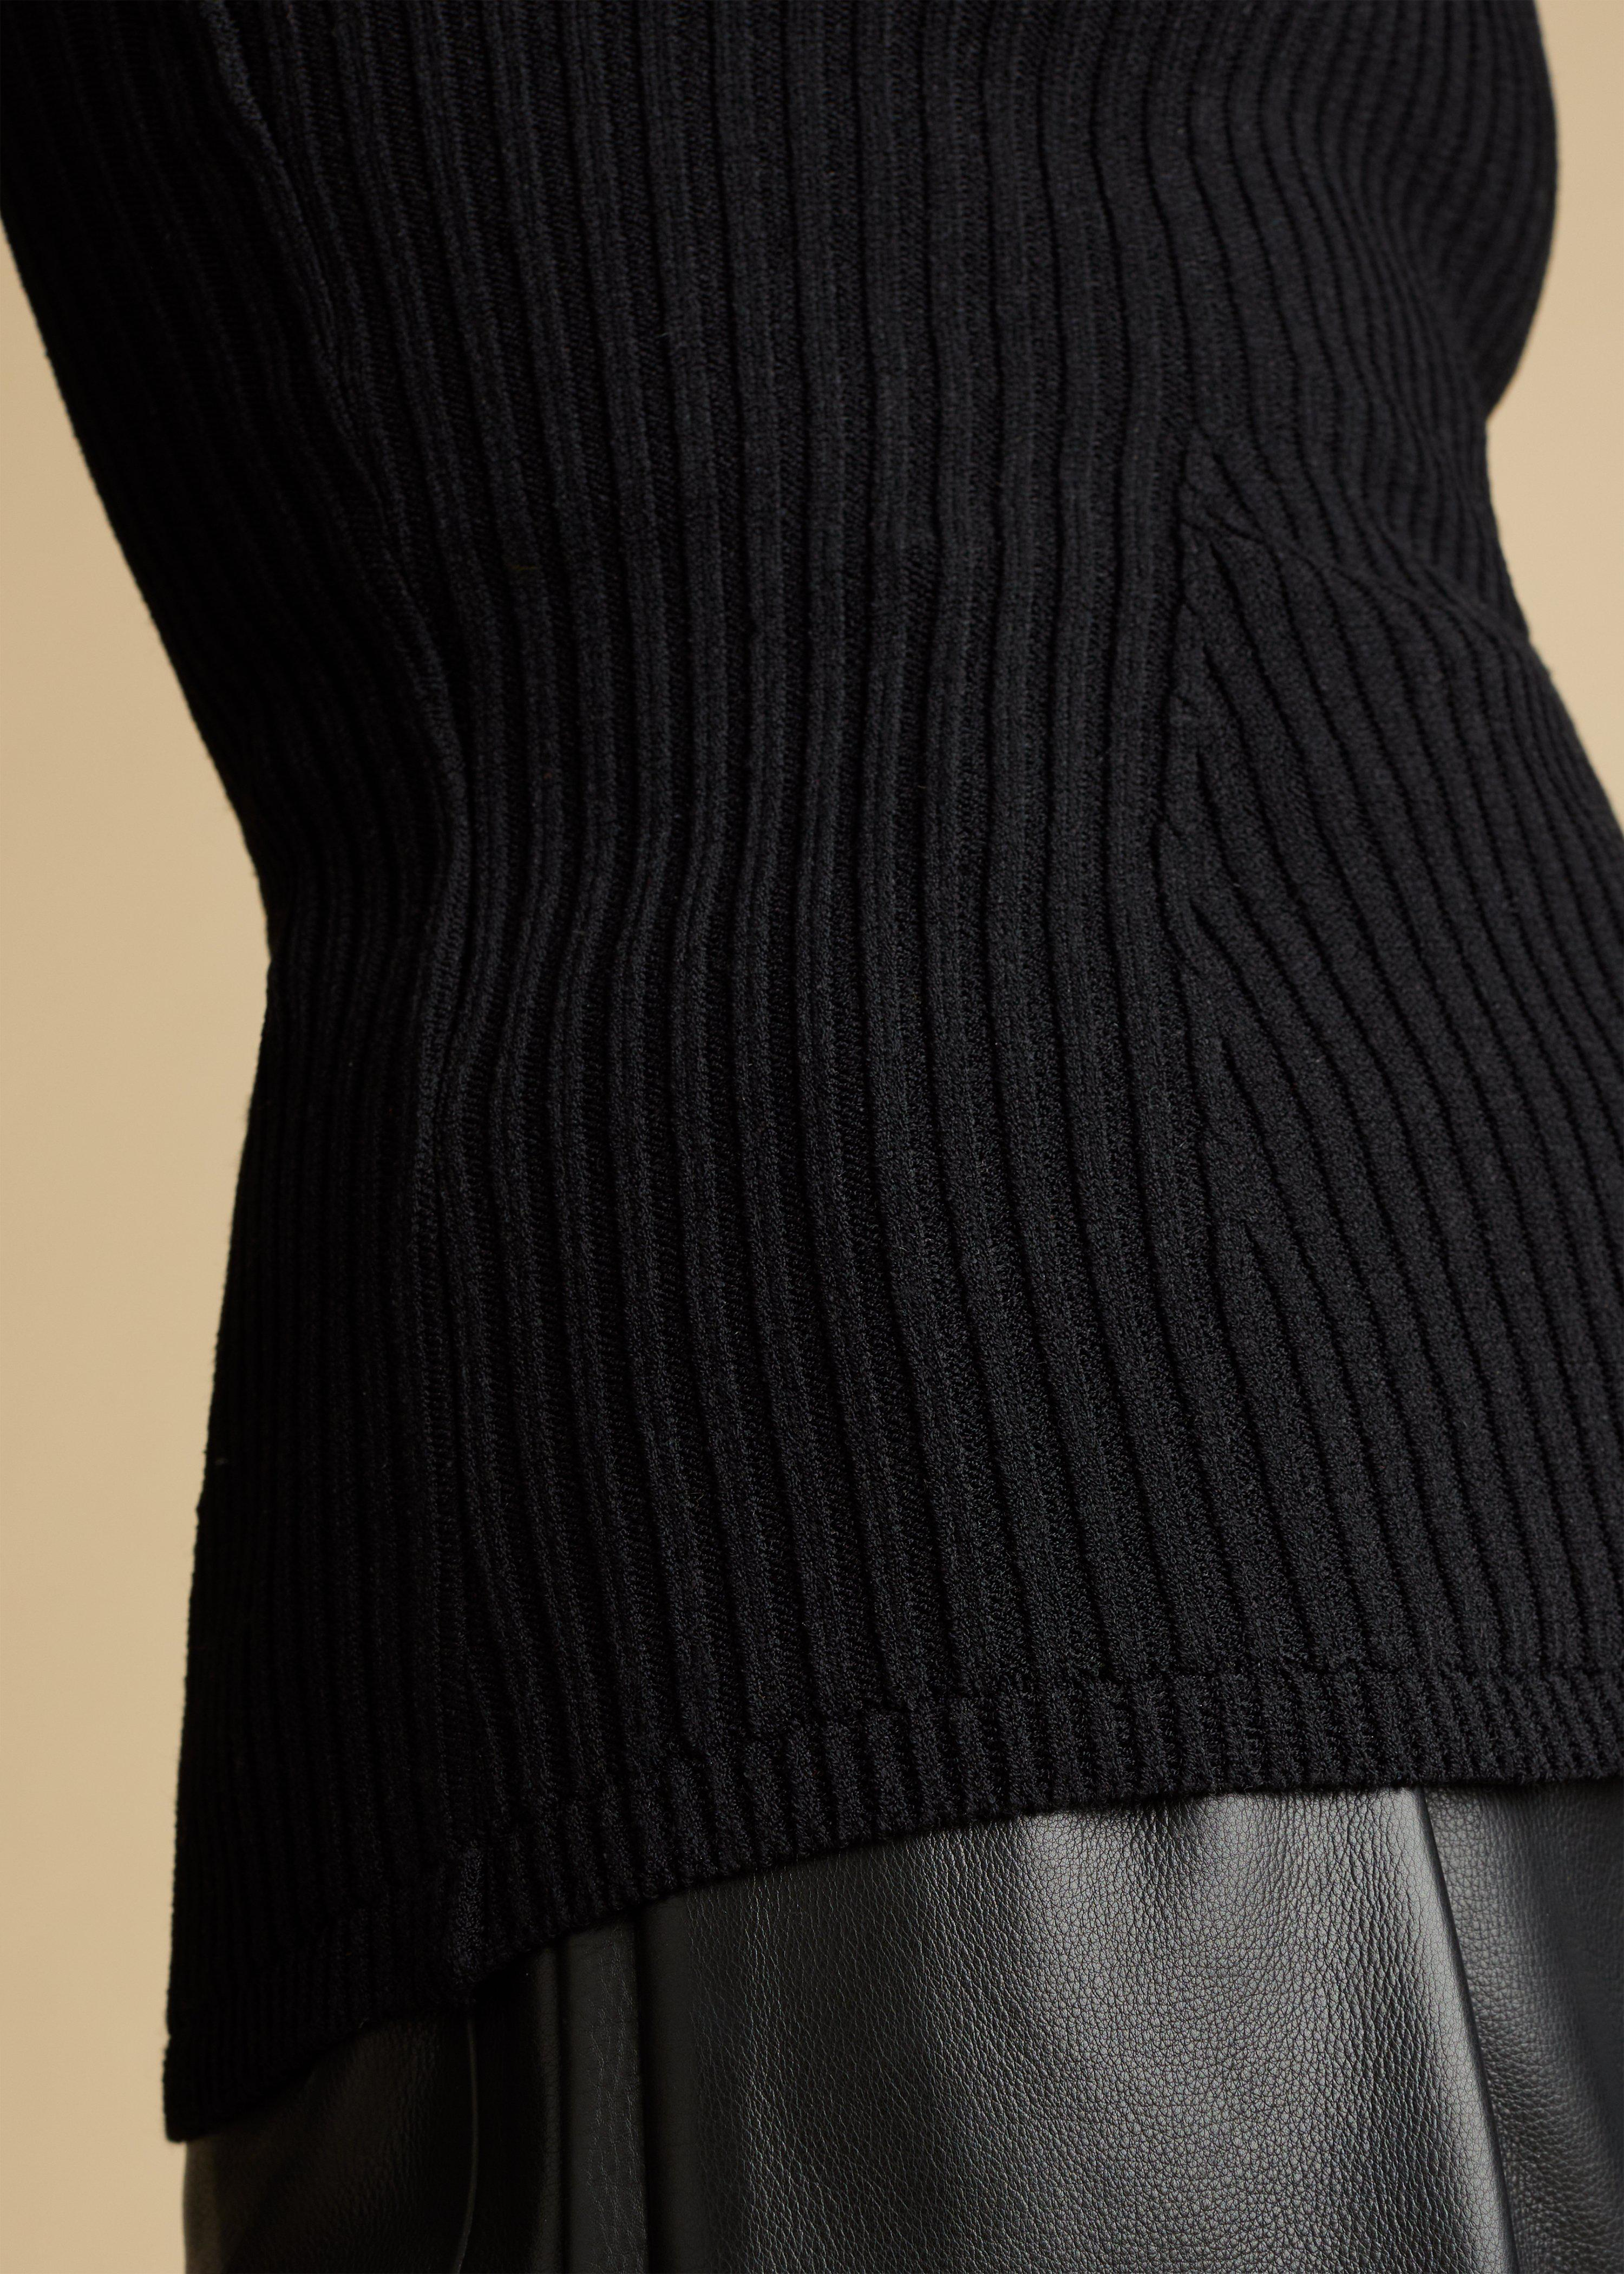 The Lucie Top in Black 7